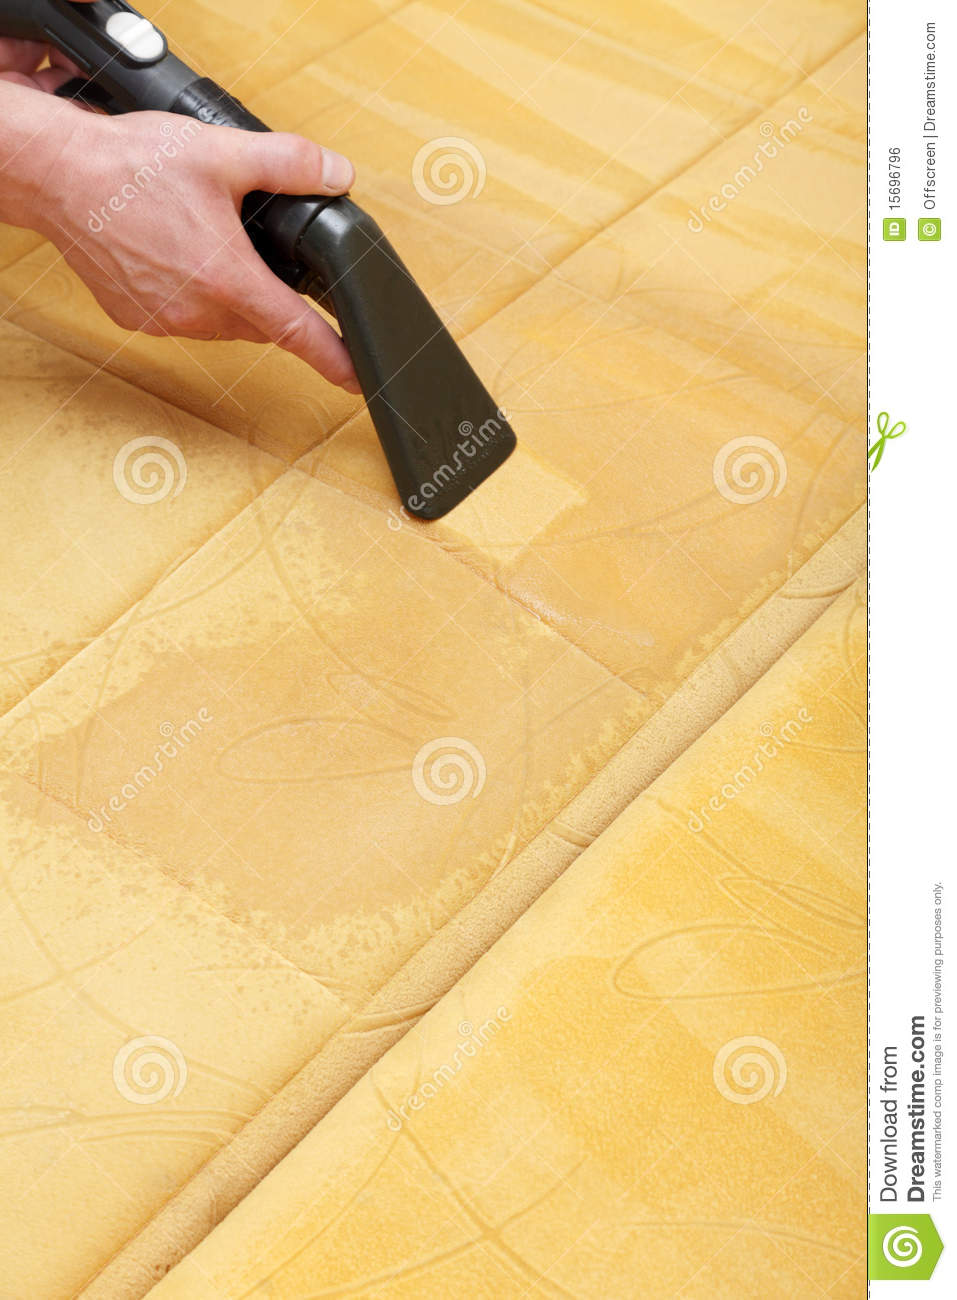 Professional Cleaning Royalty Free Stock Image